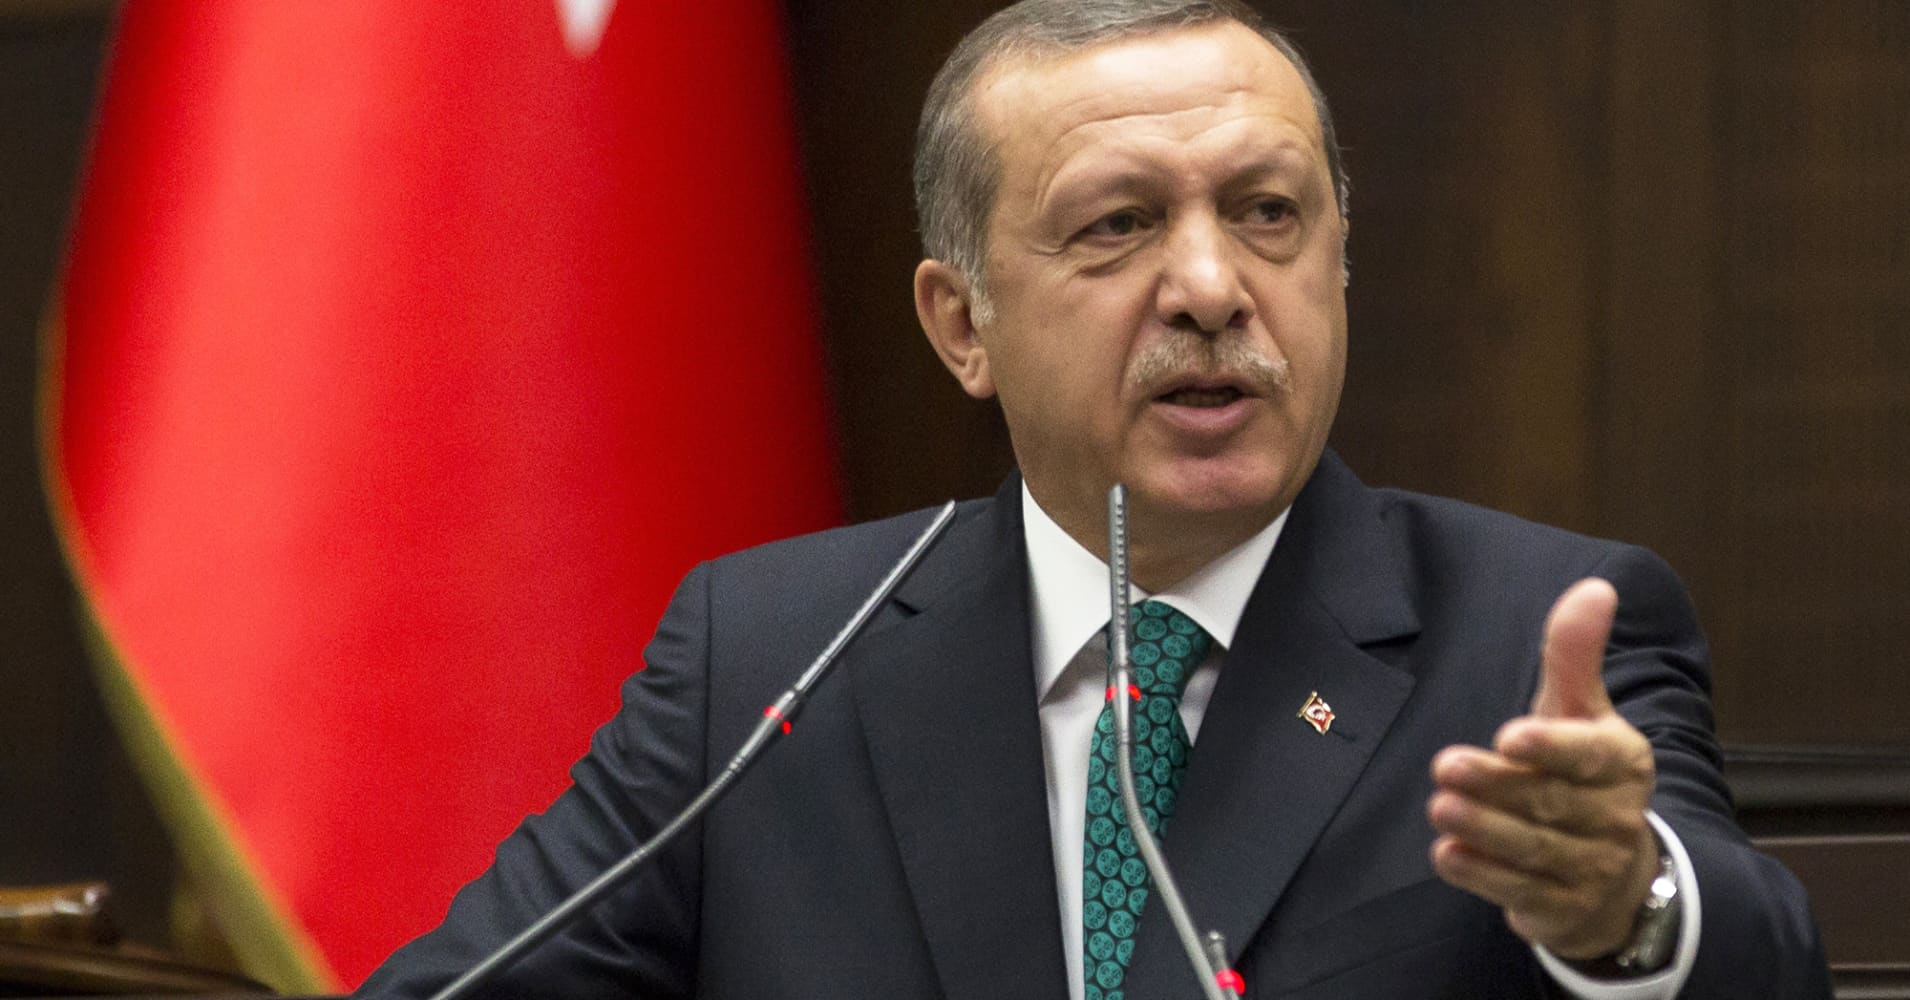 The West Hoped for Democracy in Turkey. Erdogan Had Other Ideas.